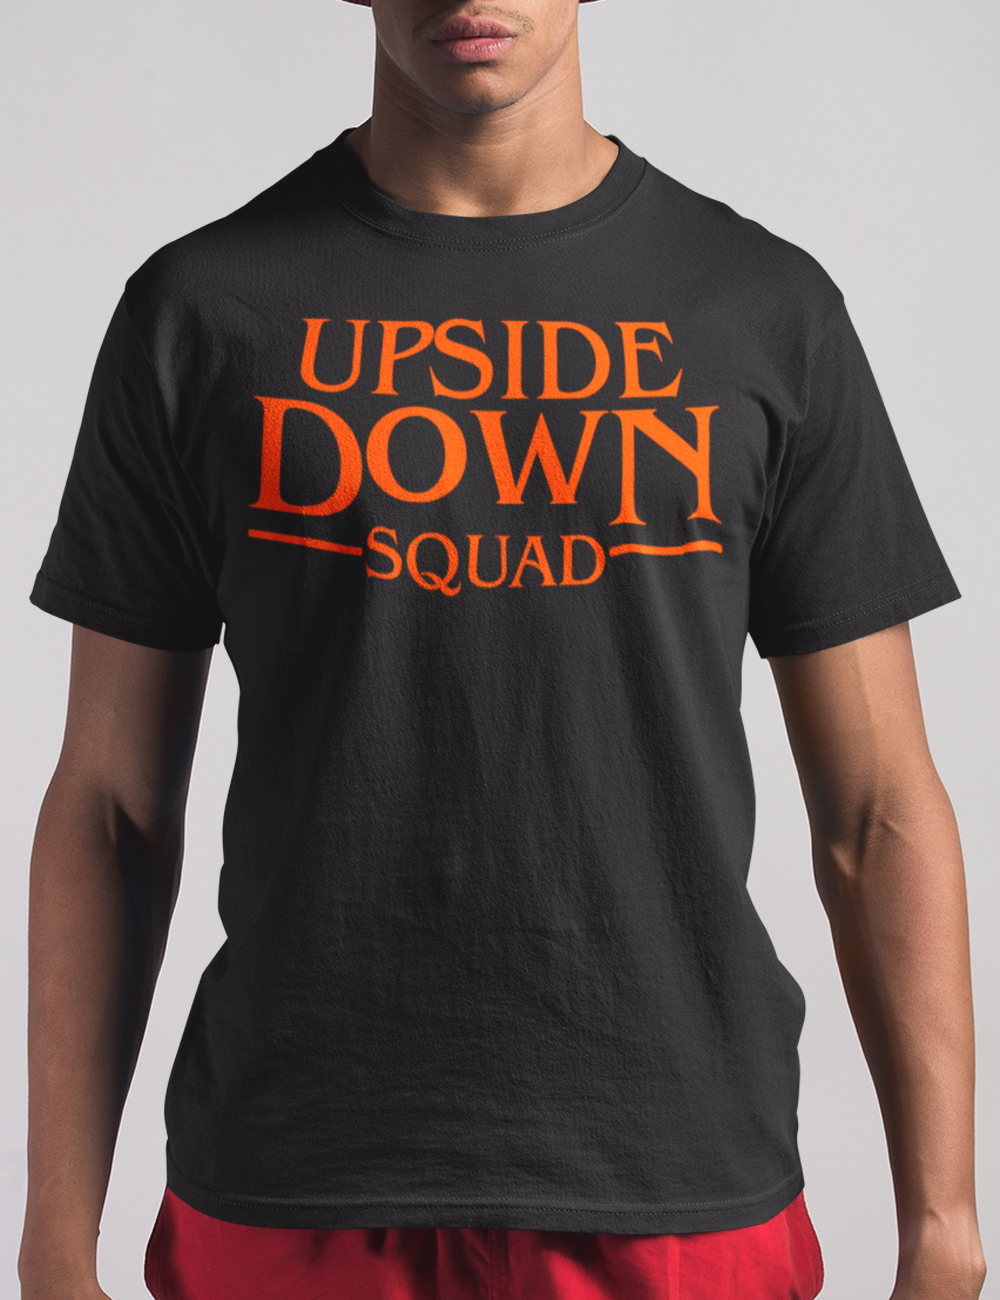 Upside Down Squad T-Shirt - OniTakai